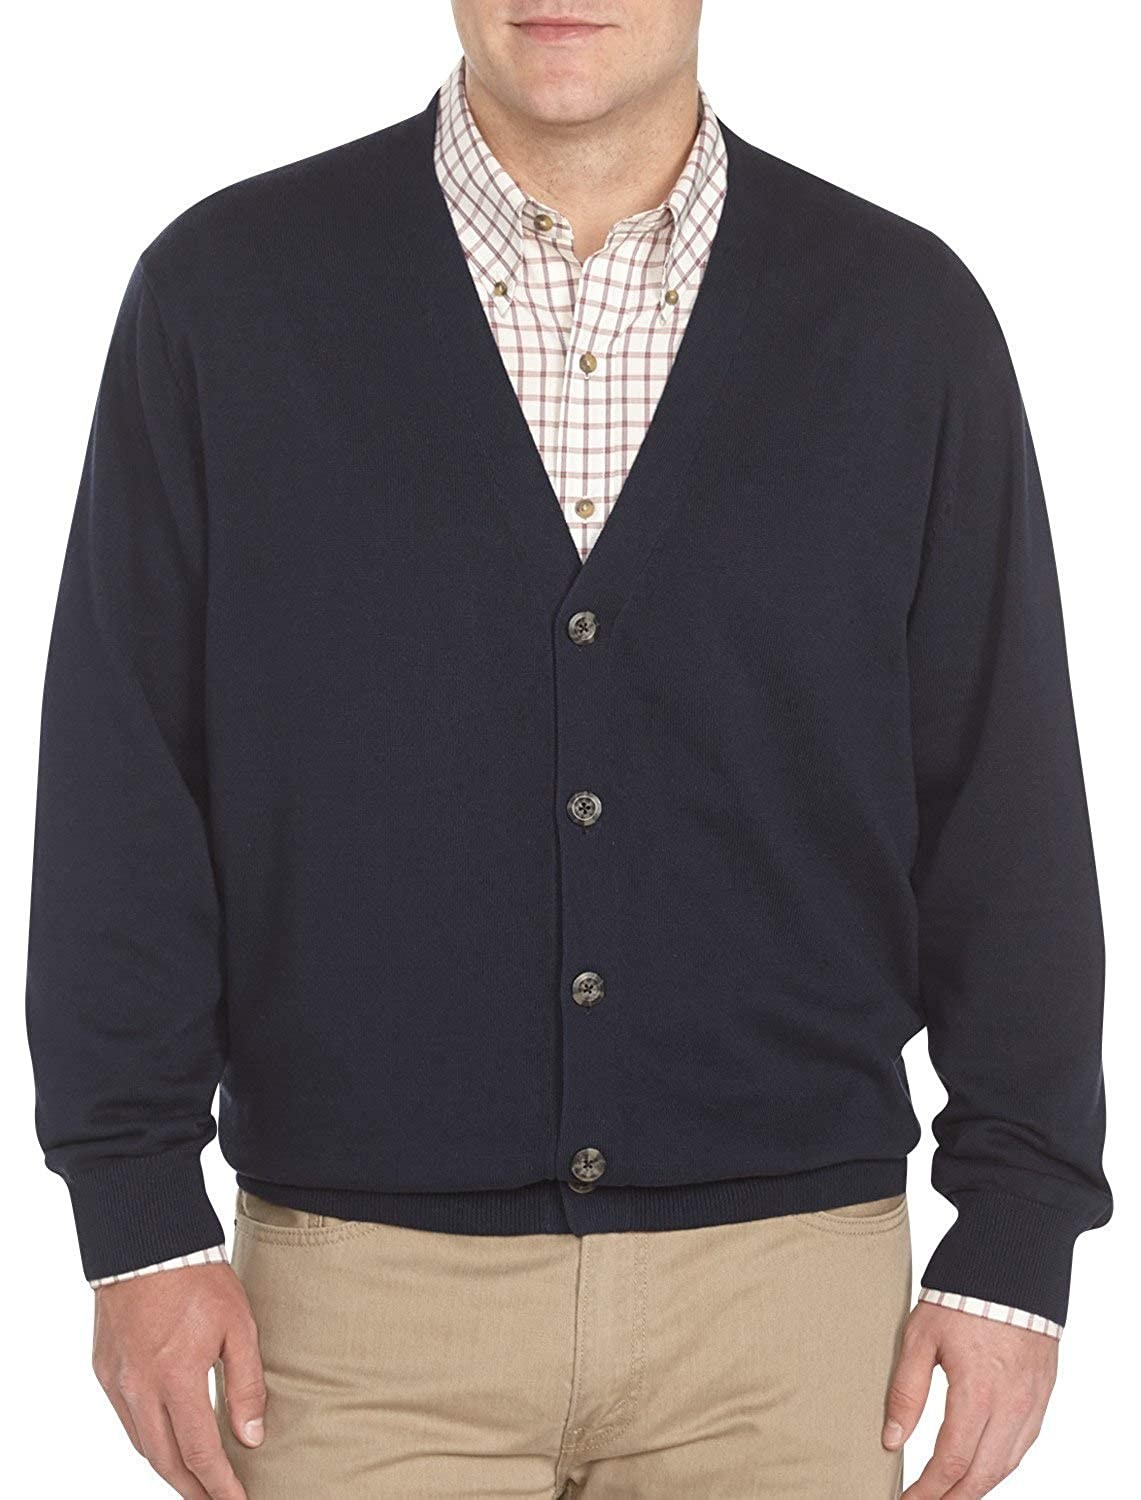 Harbor Bay by DXL Big and Tall V-Neck Button Cardigan Sweater